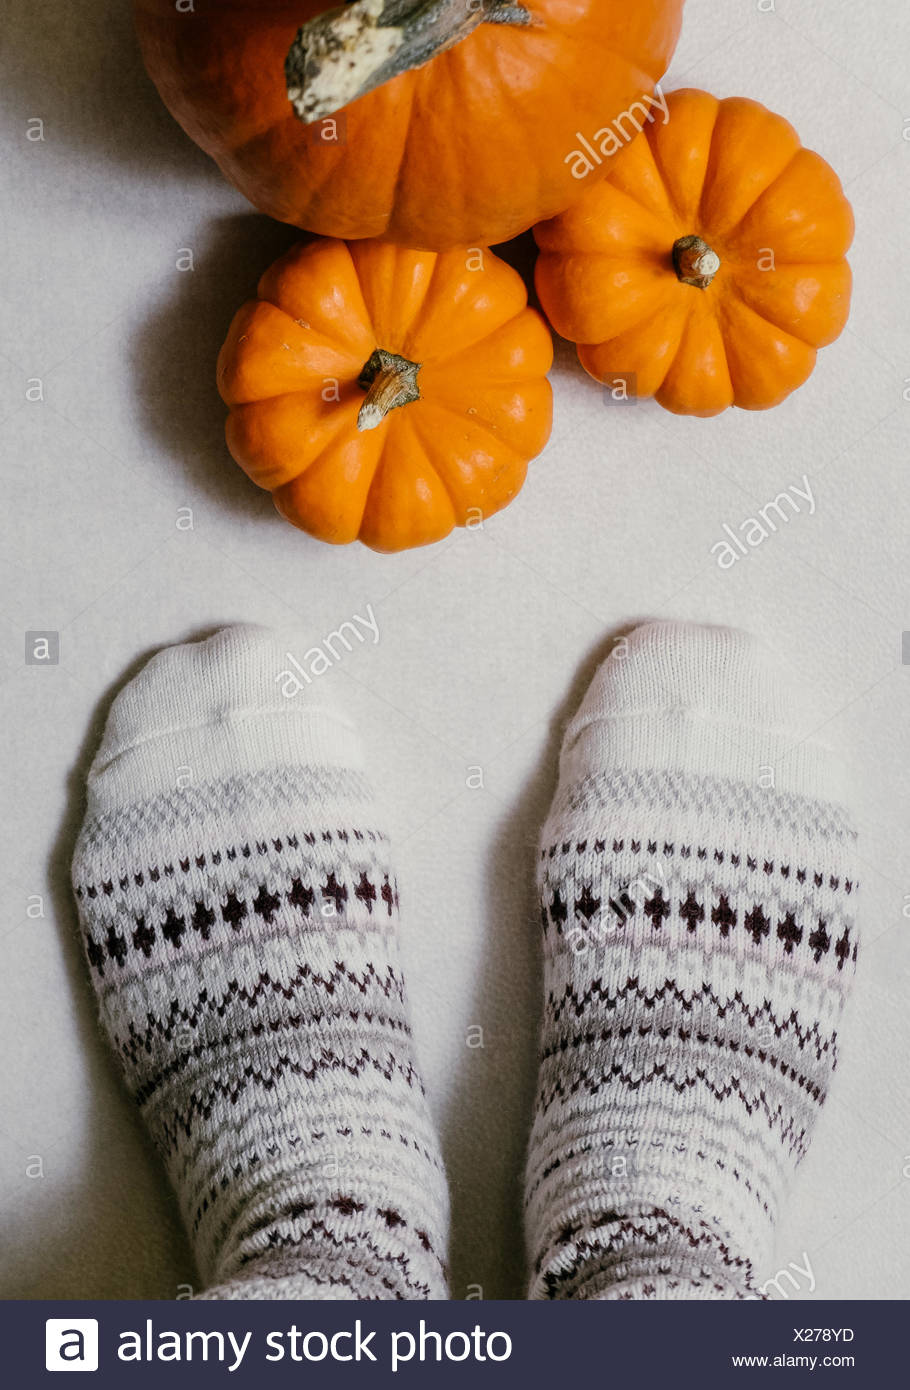 Low Section Of Woman Wearing Socks In Front Of Pumpkins On Floor - Stock Image